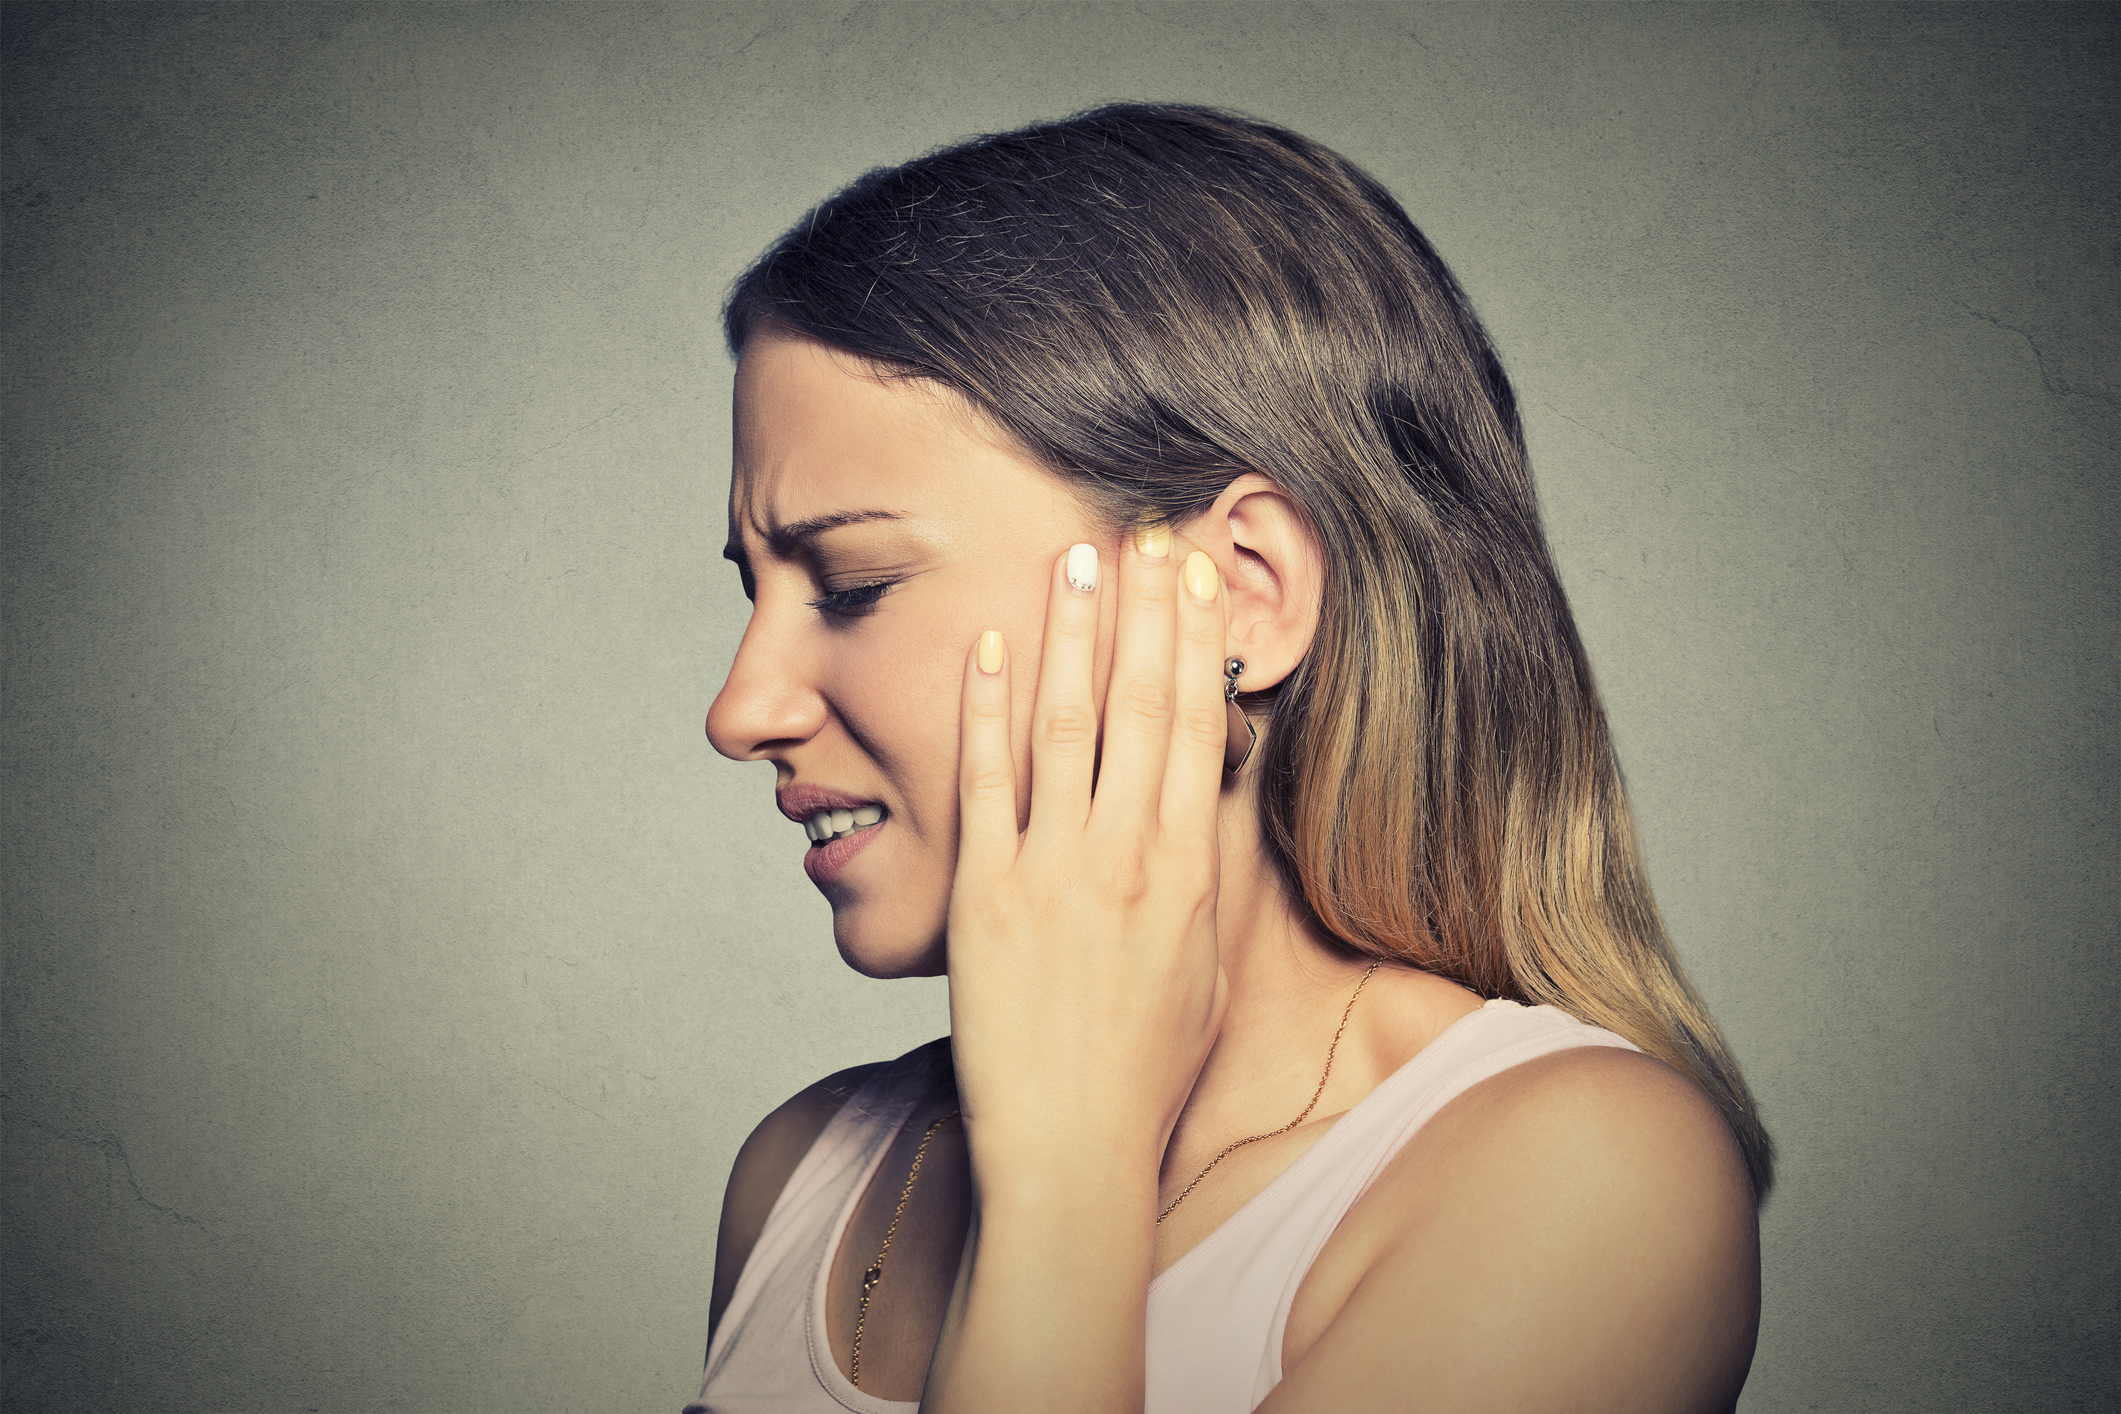 Do you experience ringing, buzzing, or hissing in your ears? If you answered yes, you are likely experiencing tinnitus. For some people this sound can be fleeting and non-bothersome. But for others this noise can be overwhelming and extremely distressing. The impact of chronic tinnitus can lead to emotional upset, reduced concentration, disruption in sleep patterns and/or a lack of enjoyment in social activities. -